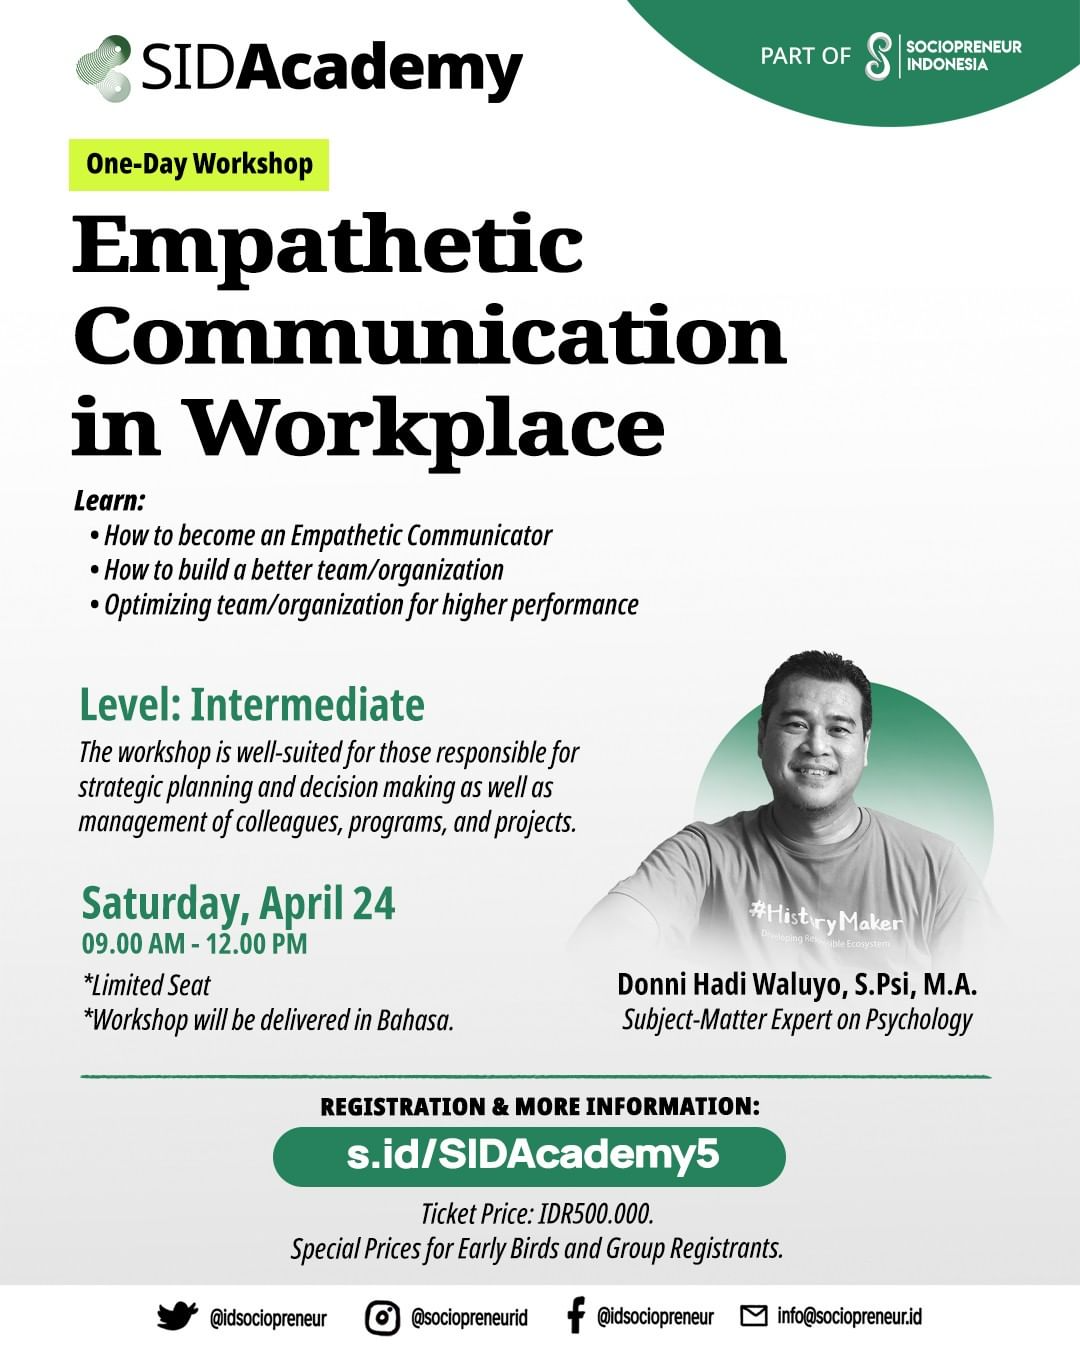 Empathetic Communication in Workplace